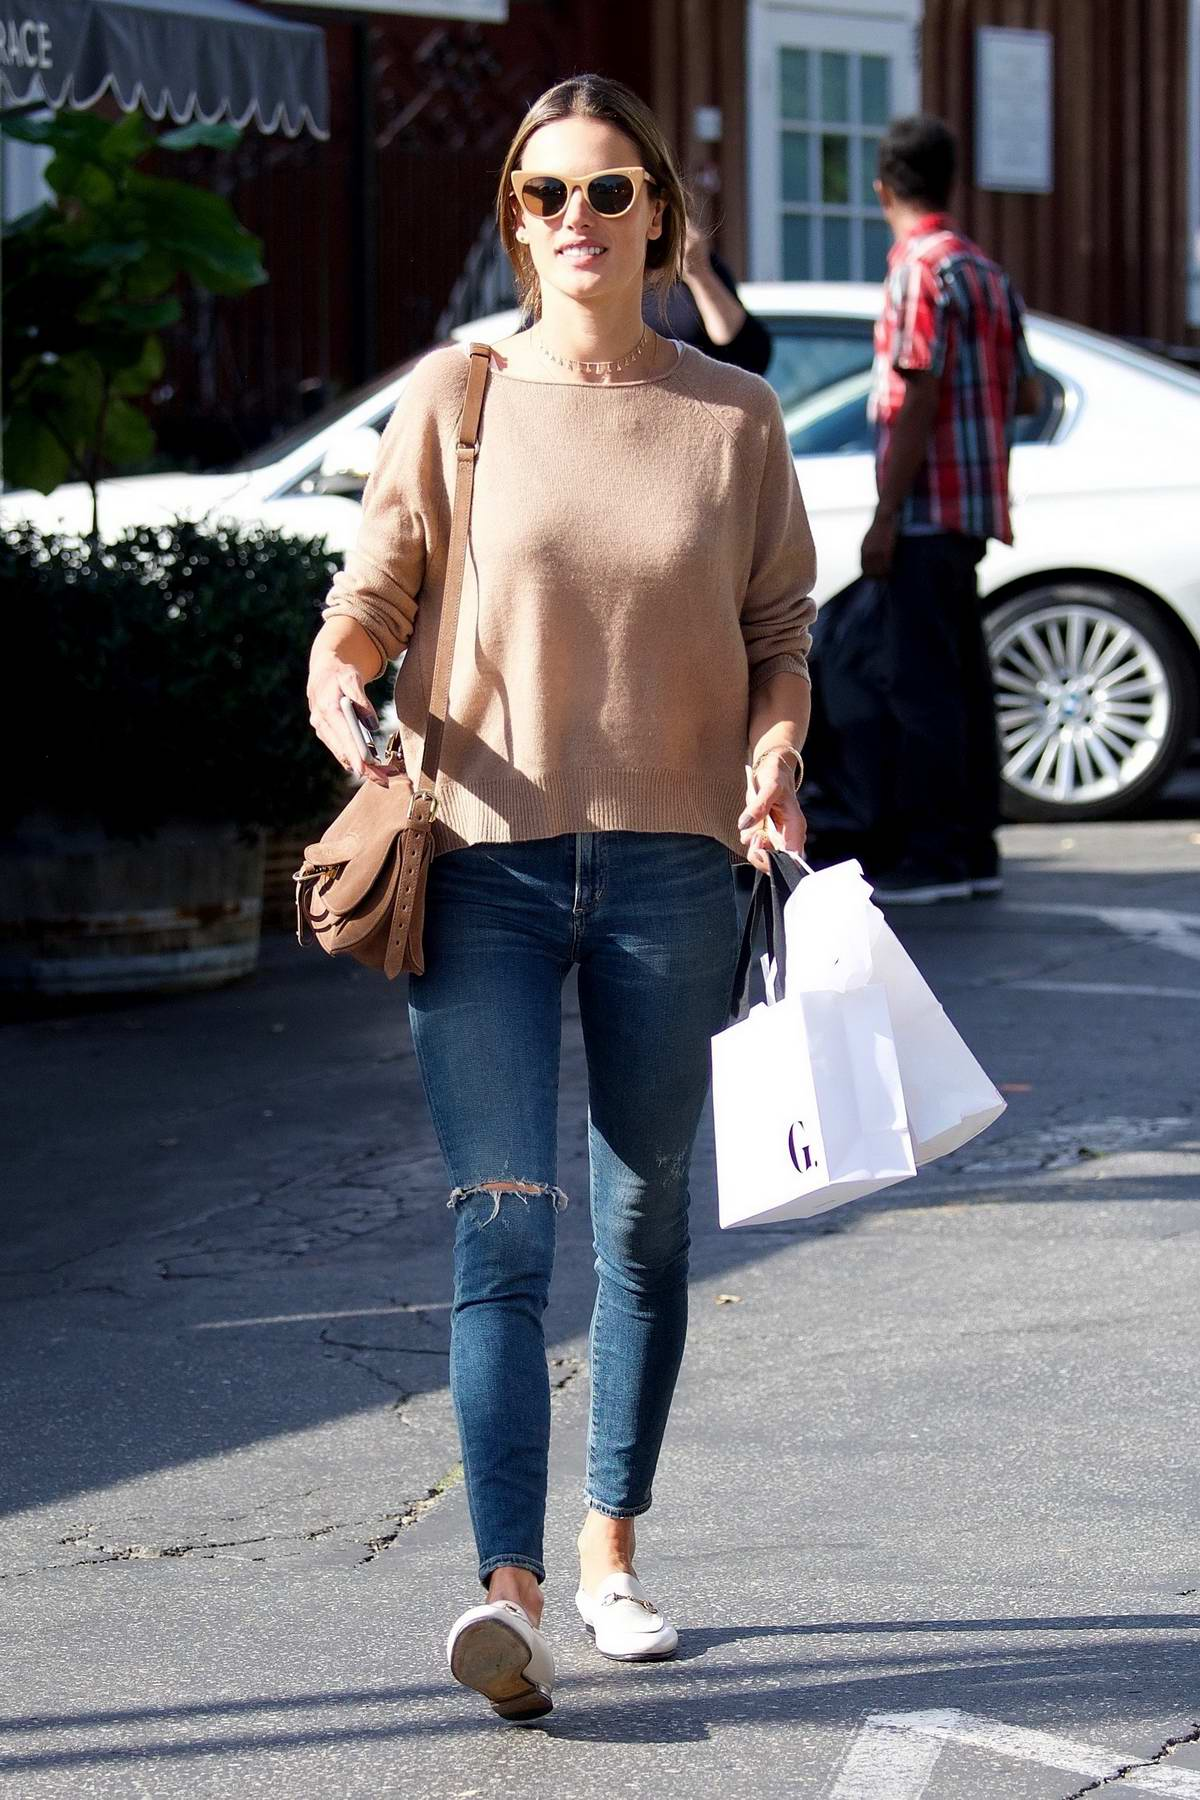 Alessandra Ambrosio did some shopping before heading out to lunch with a friend at Brentwood Country Mart in Los Angeles